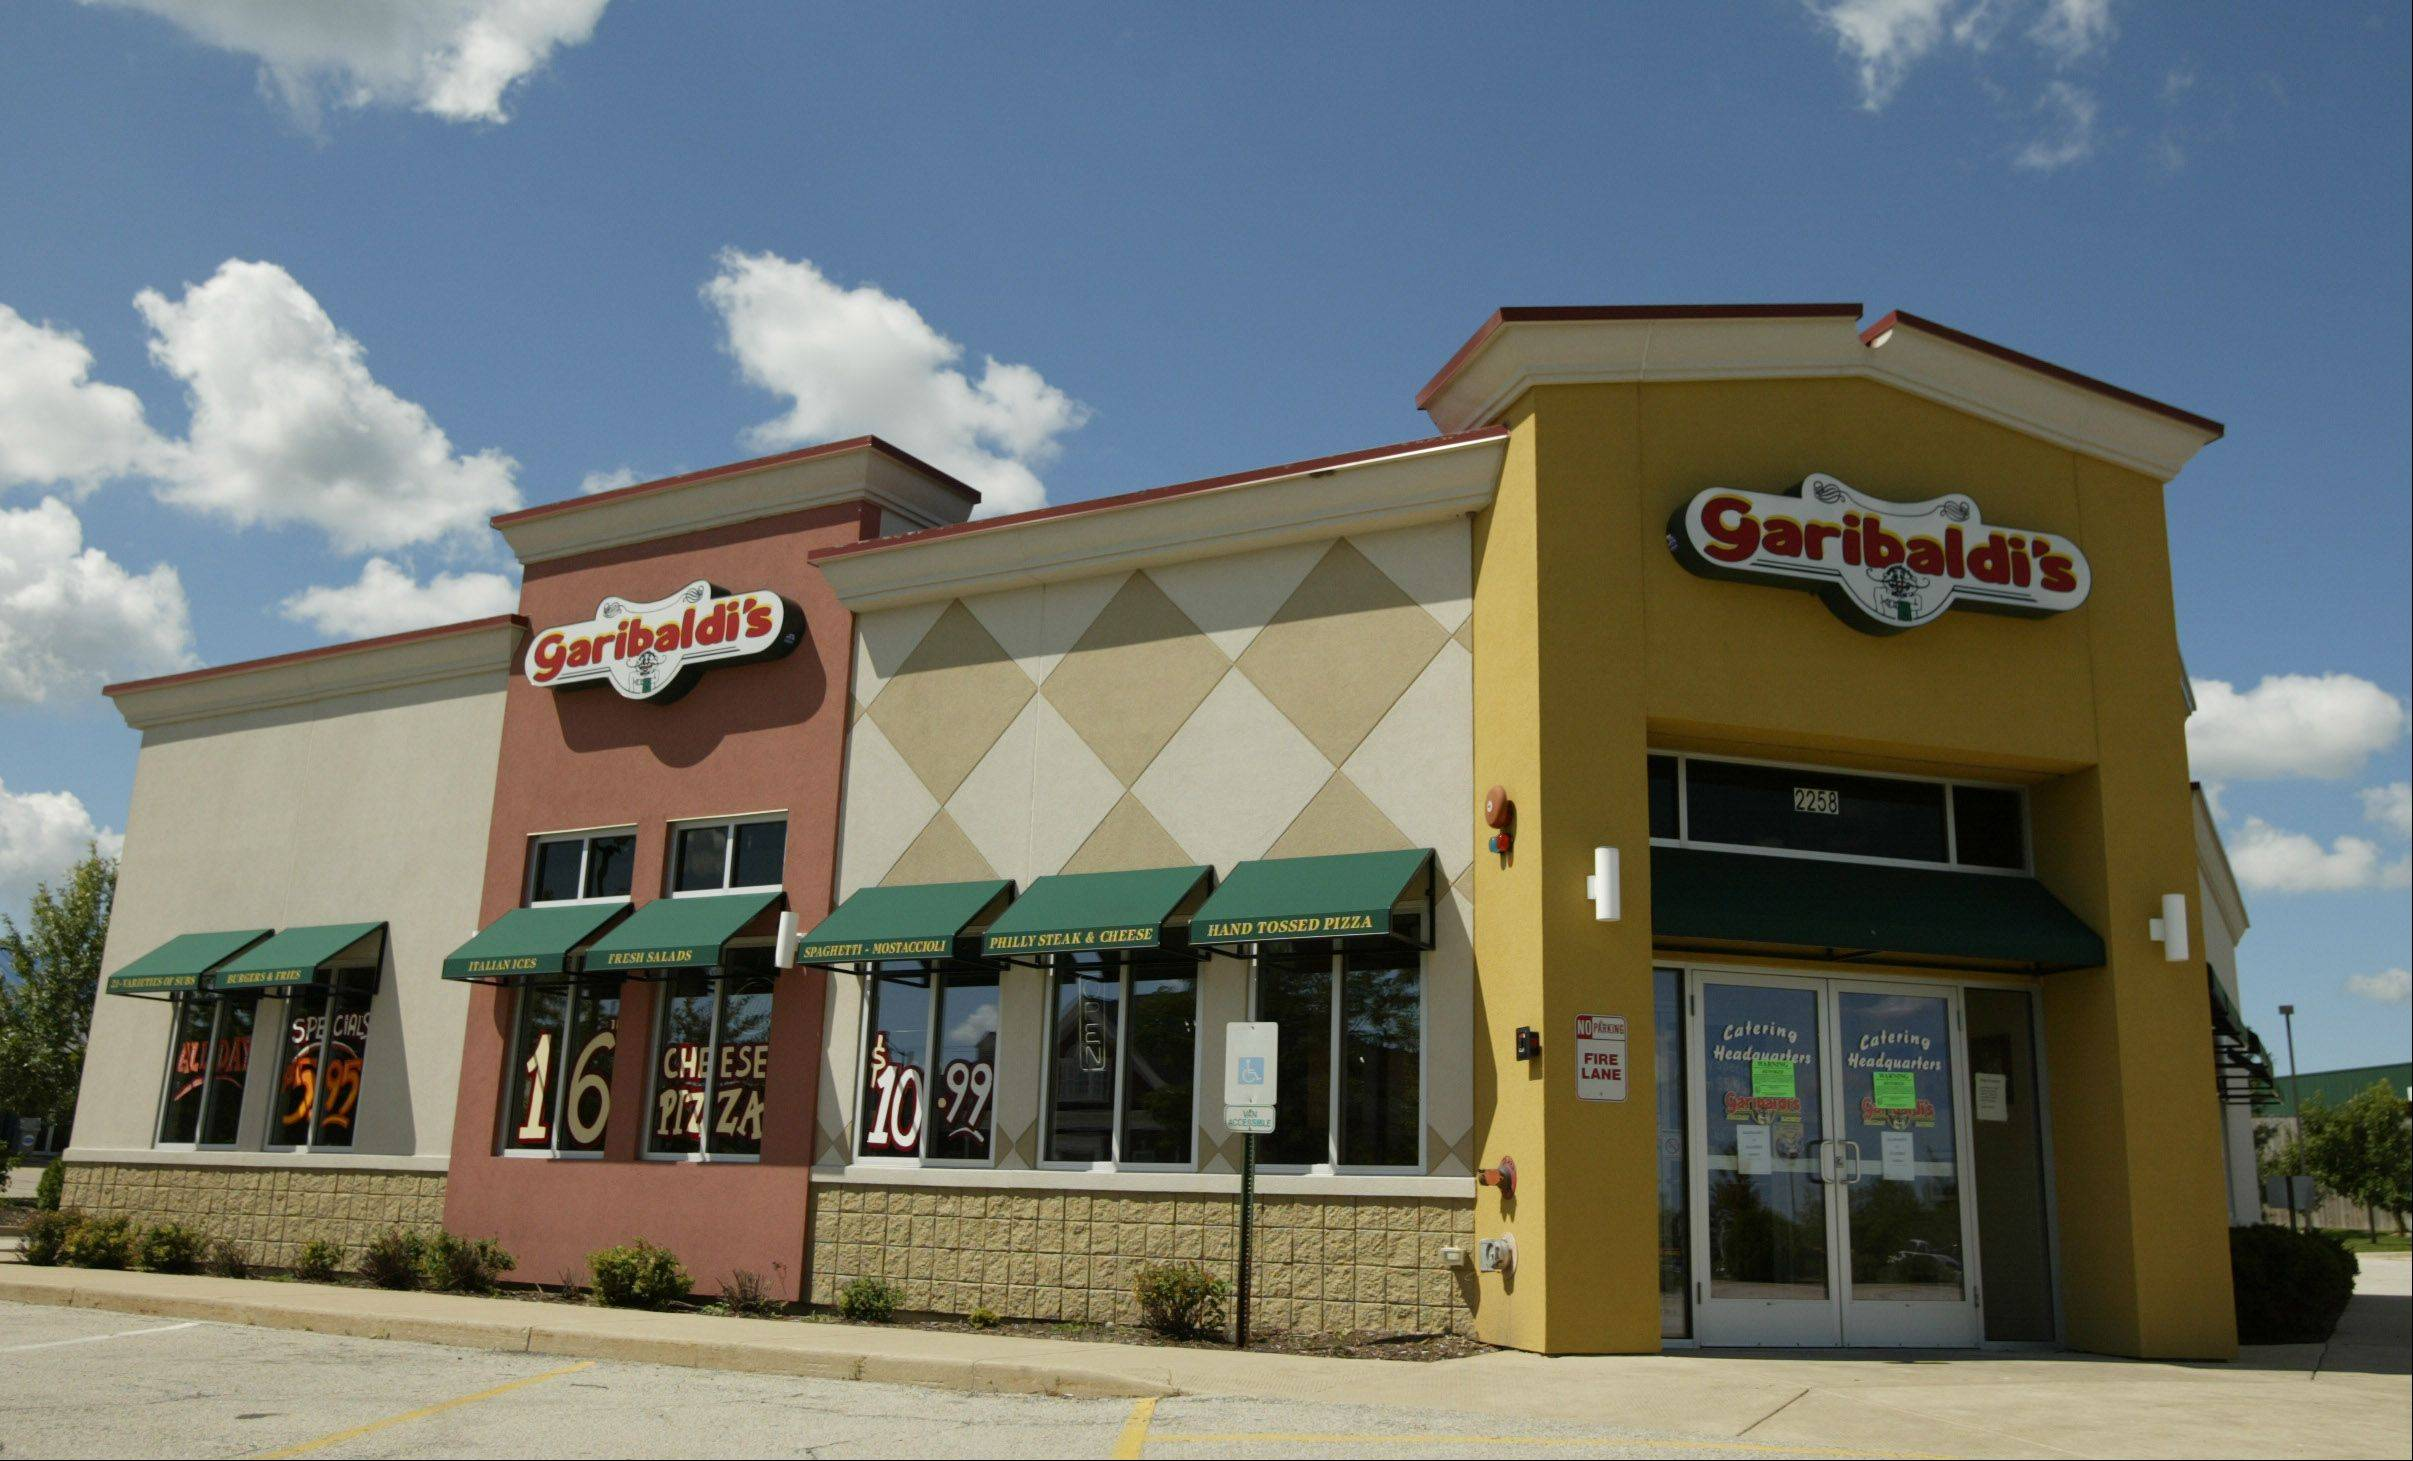 Garibaldi's restaurant in Carpentersville has closed, with its license revoked by the state for failing to pay sales taxes.